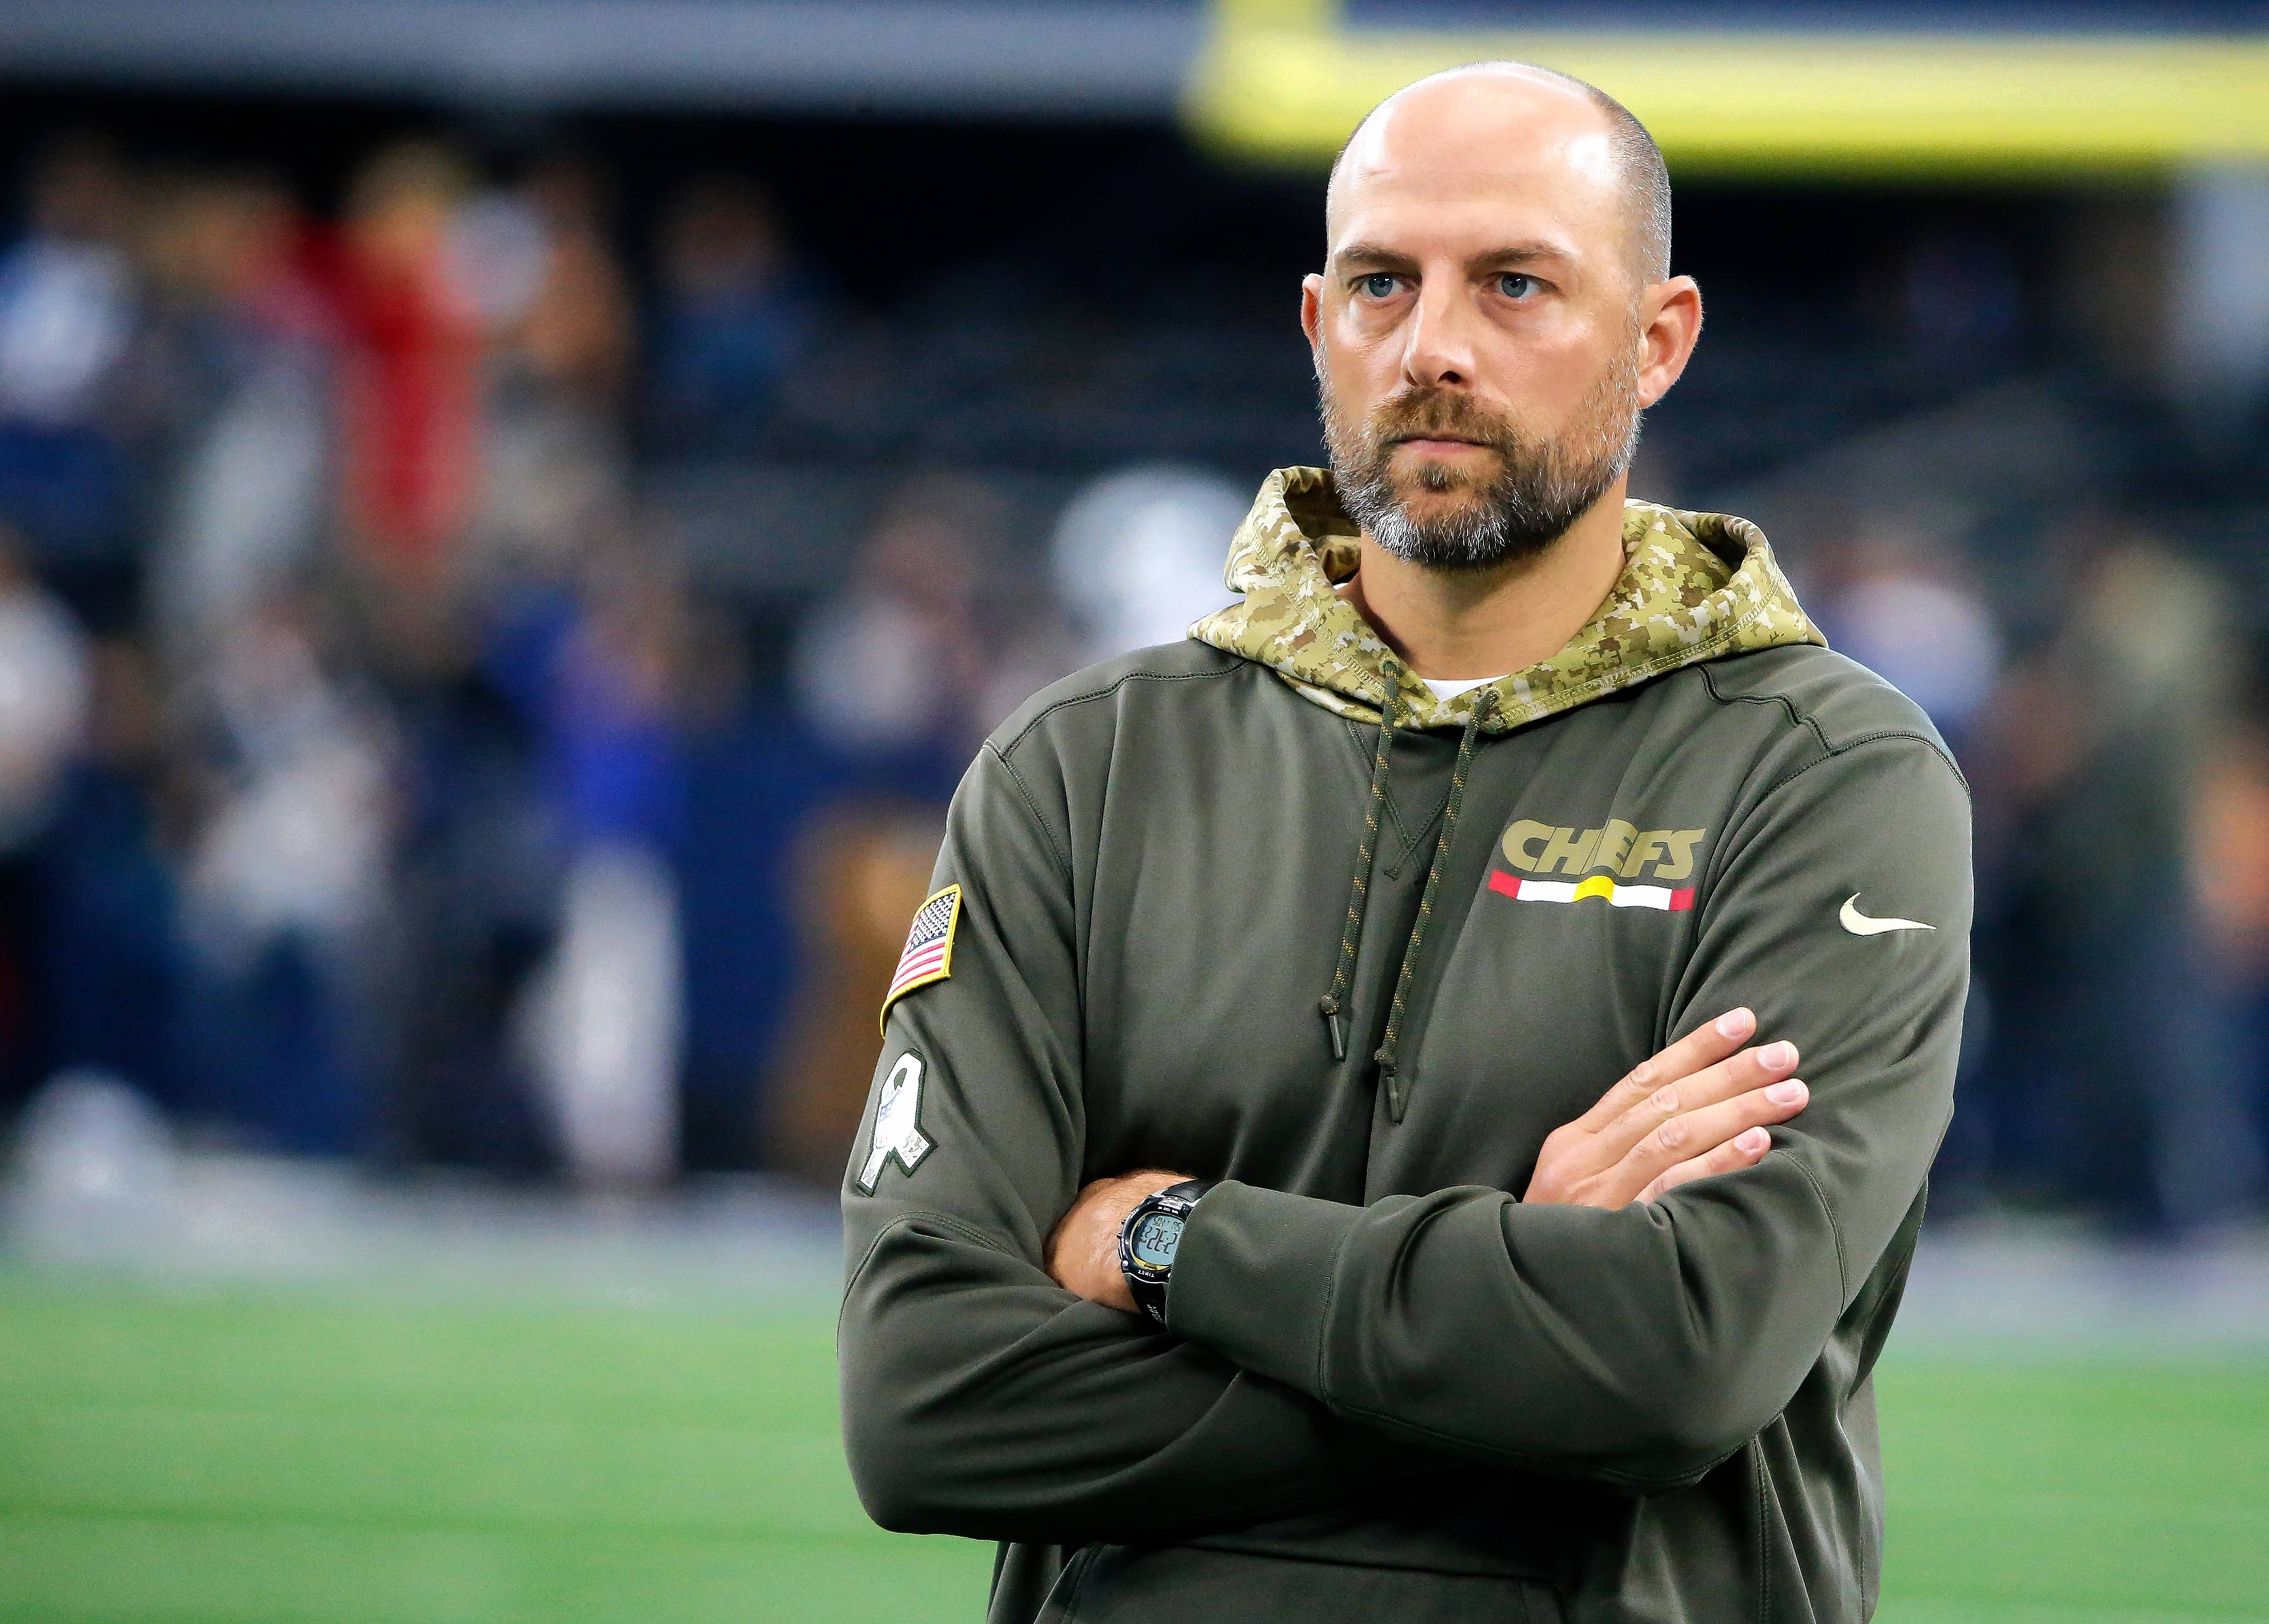 Kansas City offensive coordinator Matt Nagy helped the Chiefs become one of the most explosive offenses in the NFL this season. Nagy interviewed with Bears officials on Sunday for their head coach vacancy.